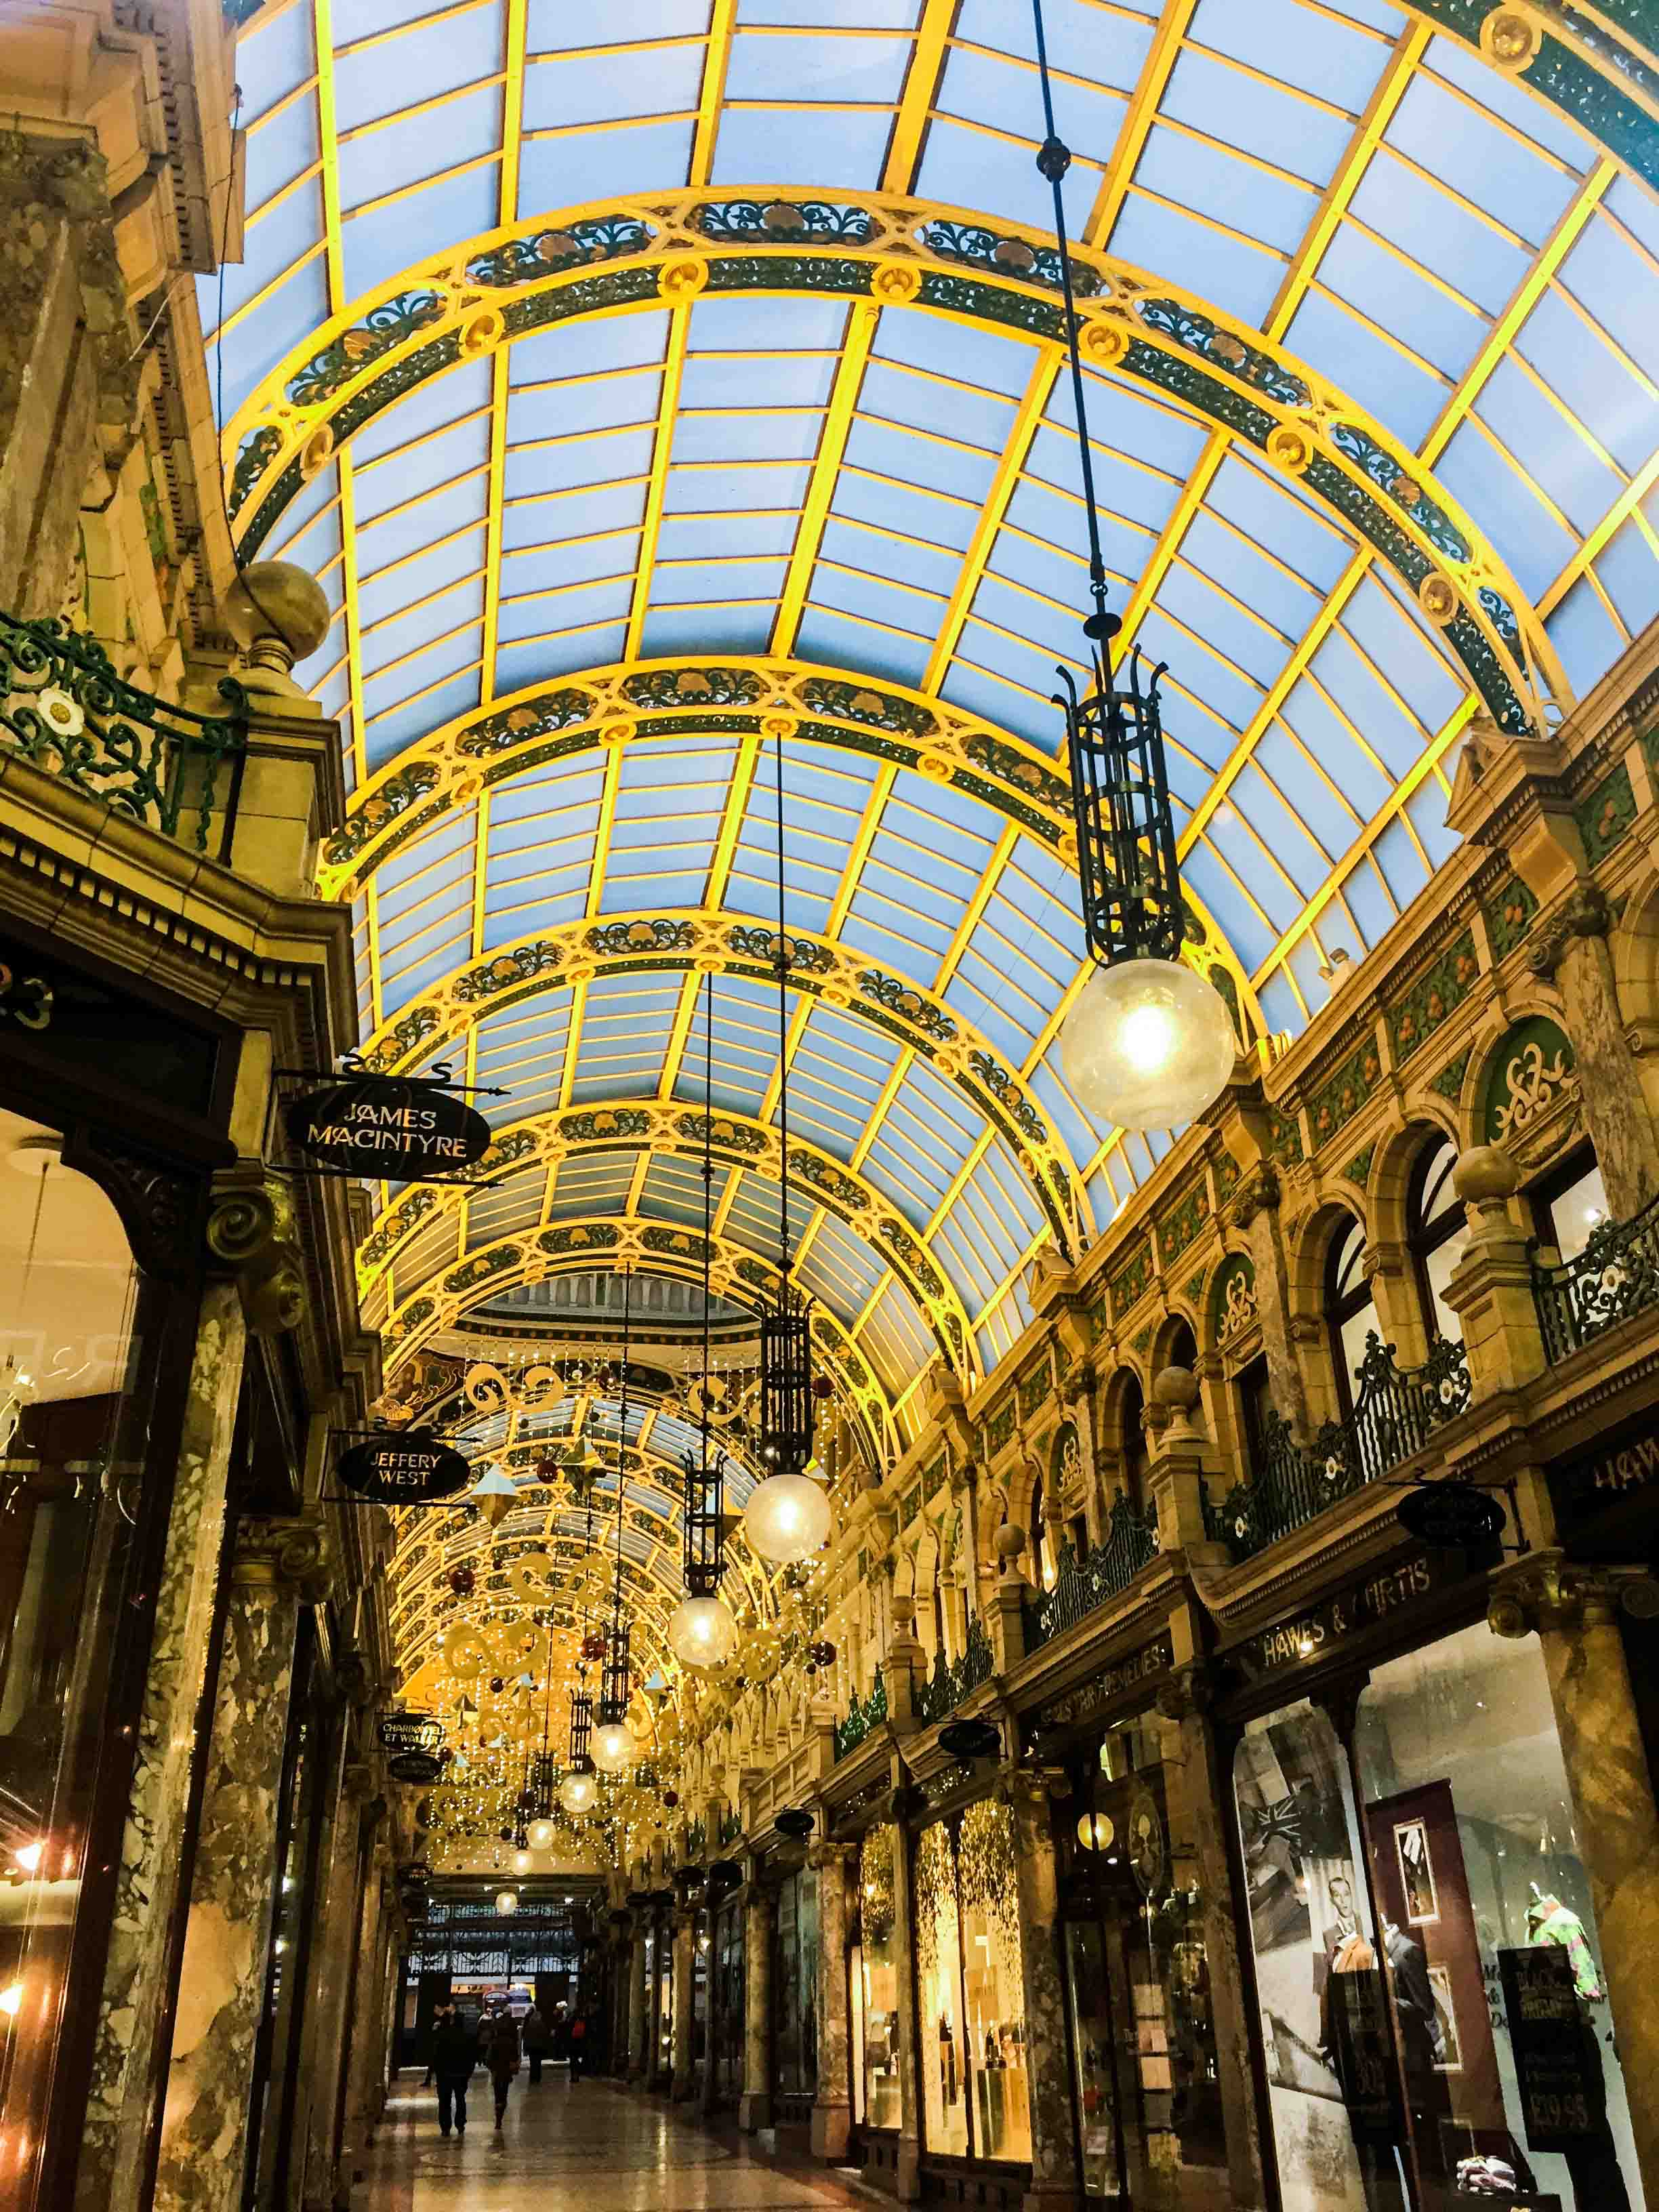 The Victoria Arcade shopping centre in Leeds, Yorkshire, England.